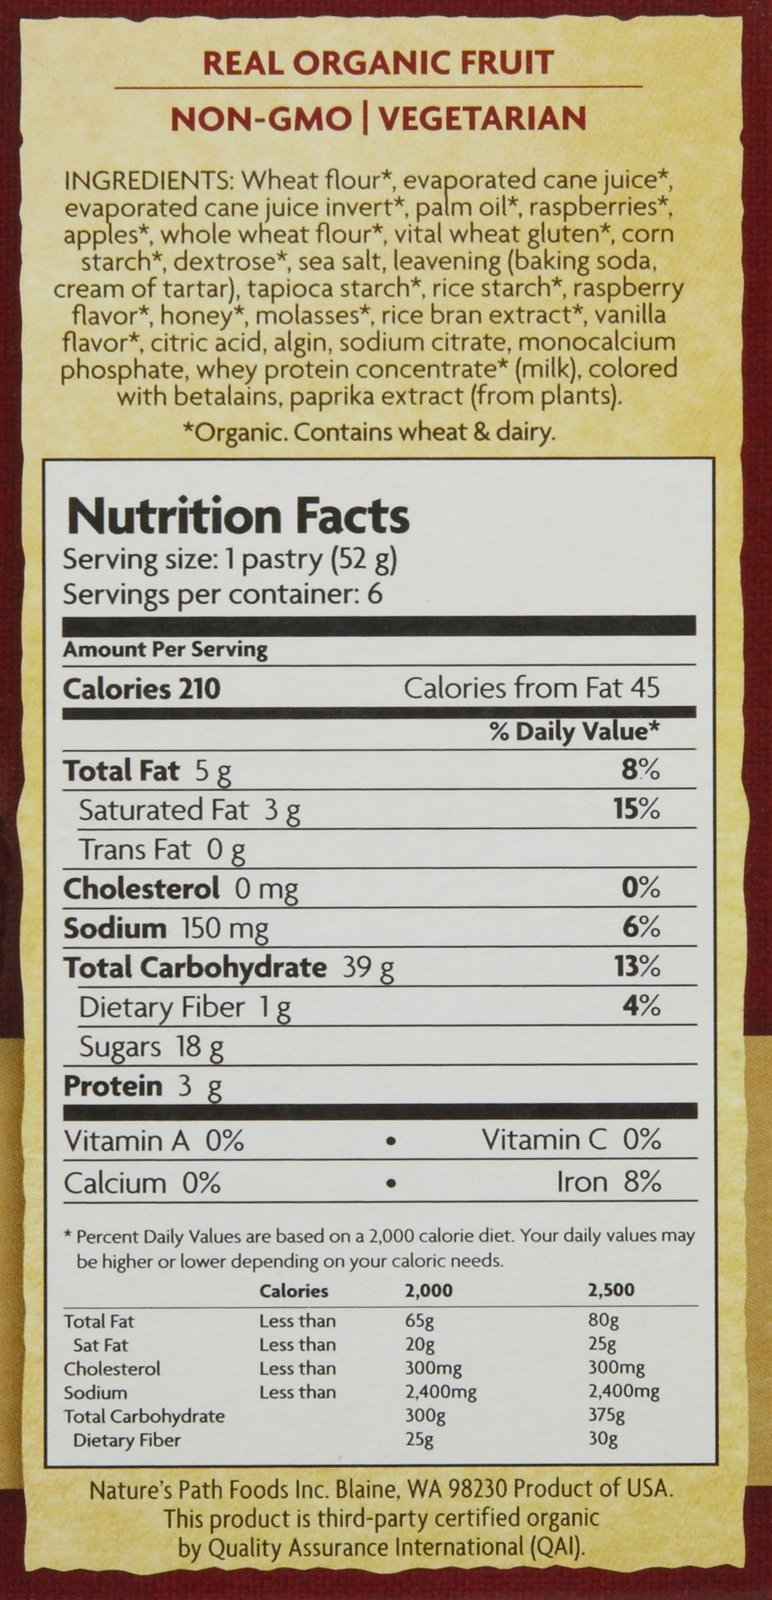 Nature's Path Frosted Toaster Pastry - Raspberry - 11 oz - 6 ct by Nature's Path (Image #2)